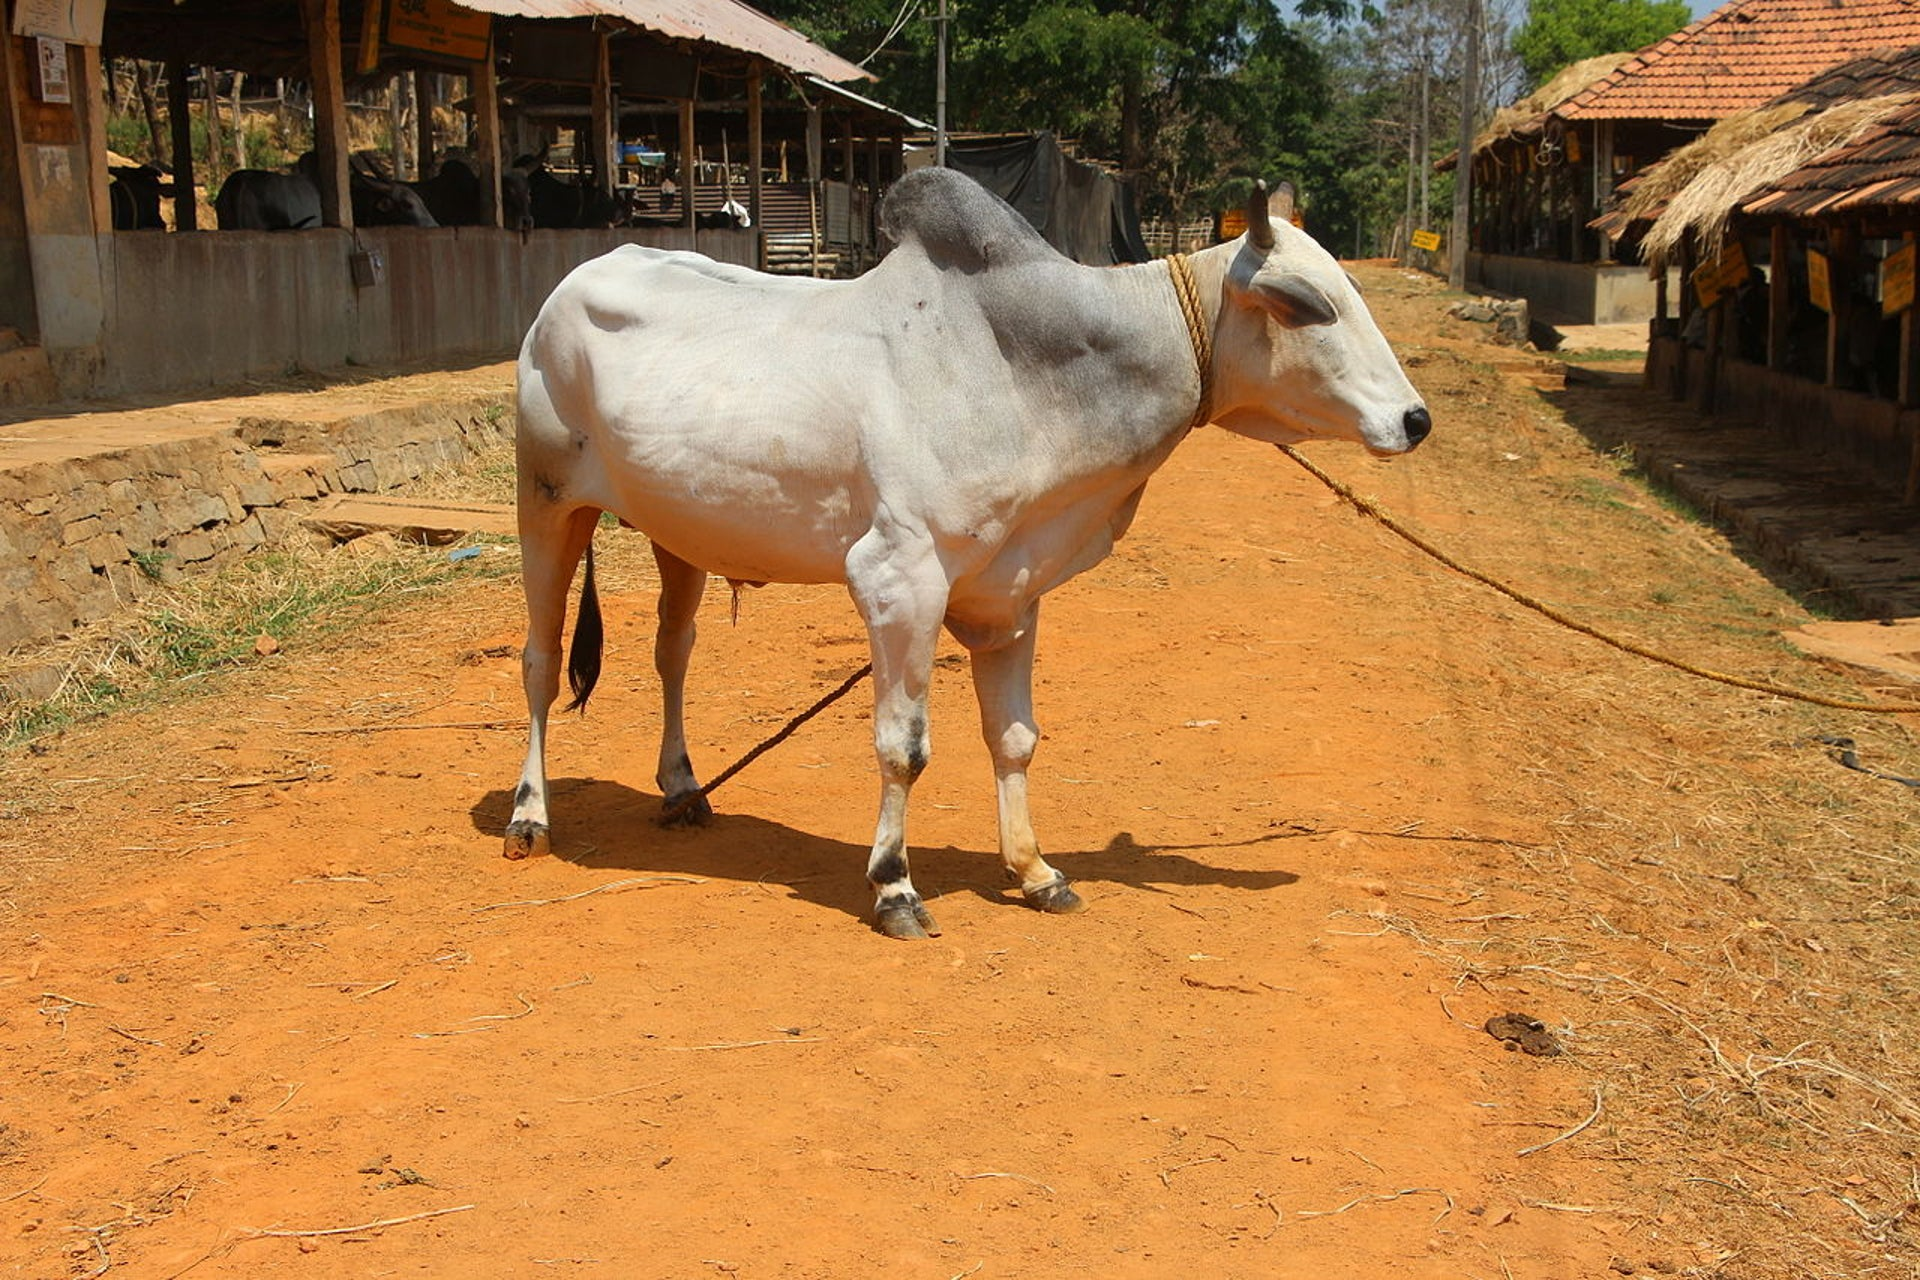 A typical Zebu cow, this particular specimen in northern India. Zebu are characterized by the fatty hump over their shoulder but more importantly, by relative resistance to heat, disease, sun, and humidity compared with the taurine cow.